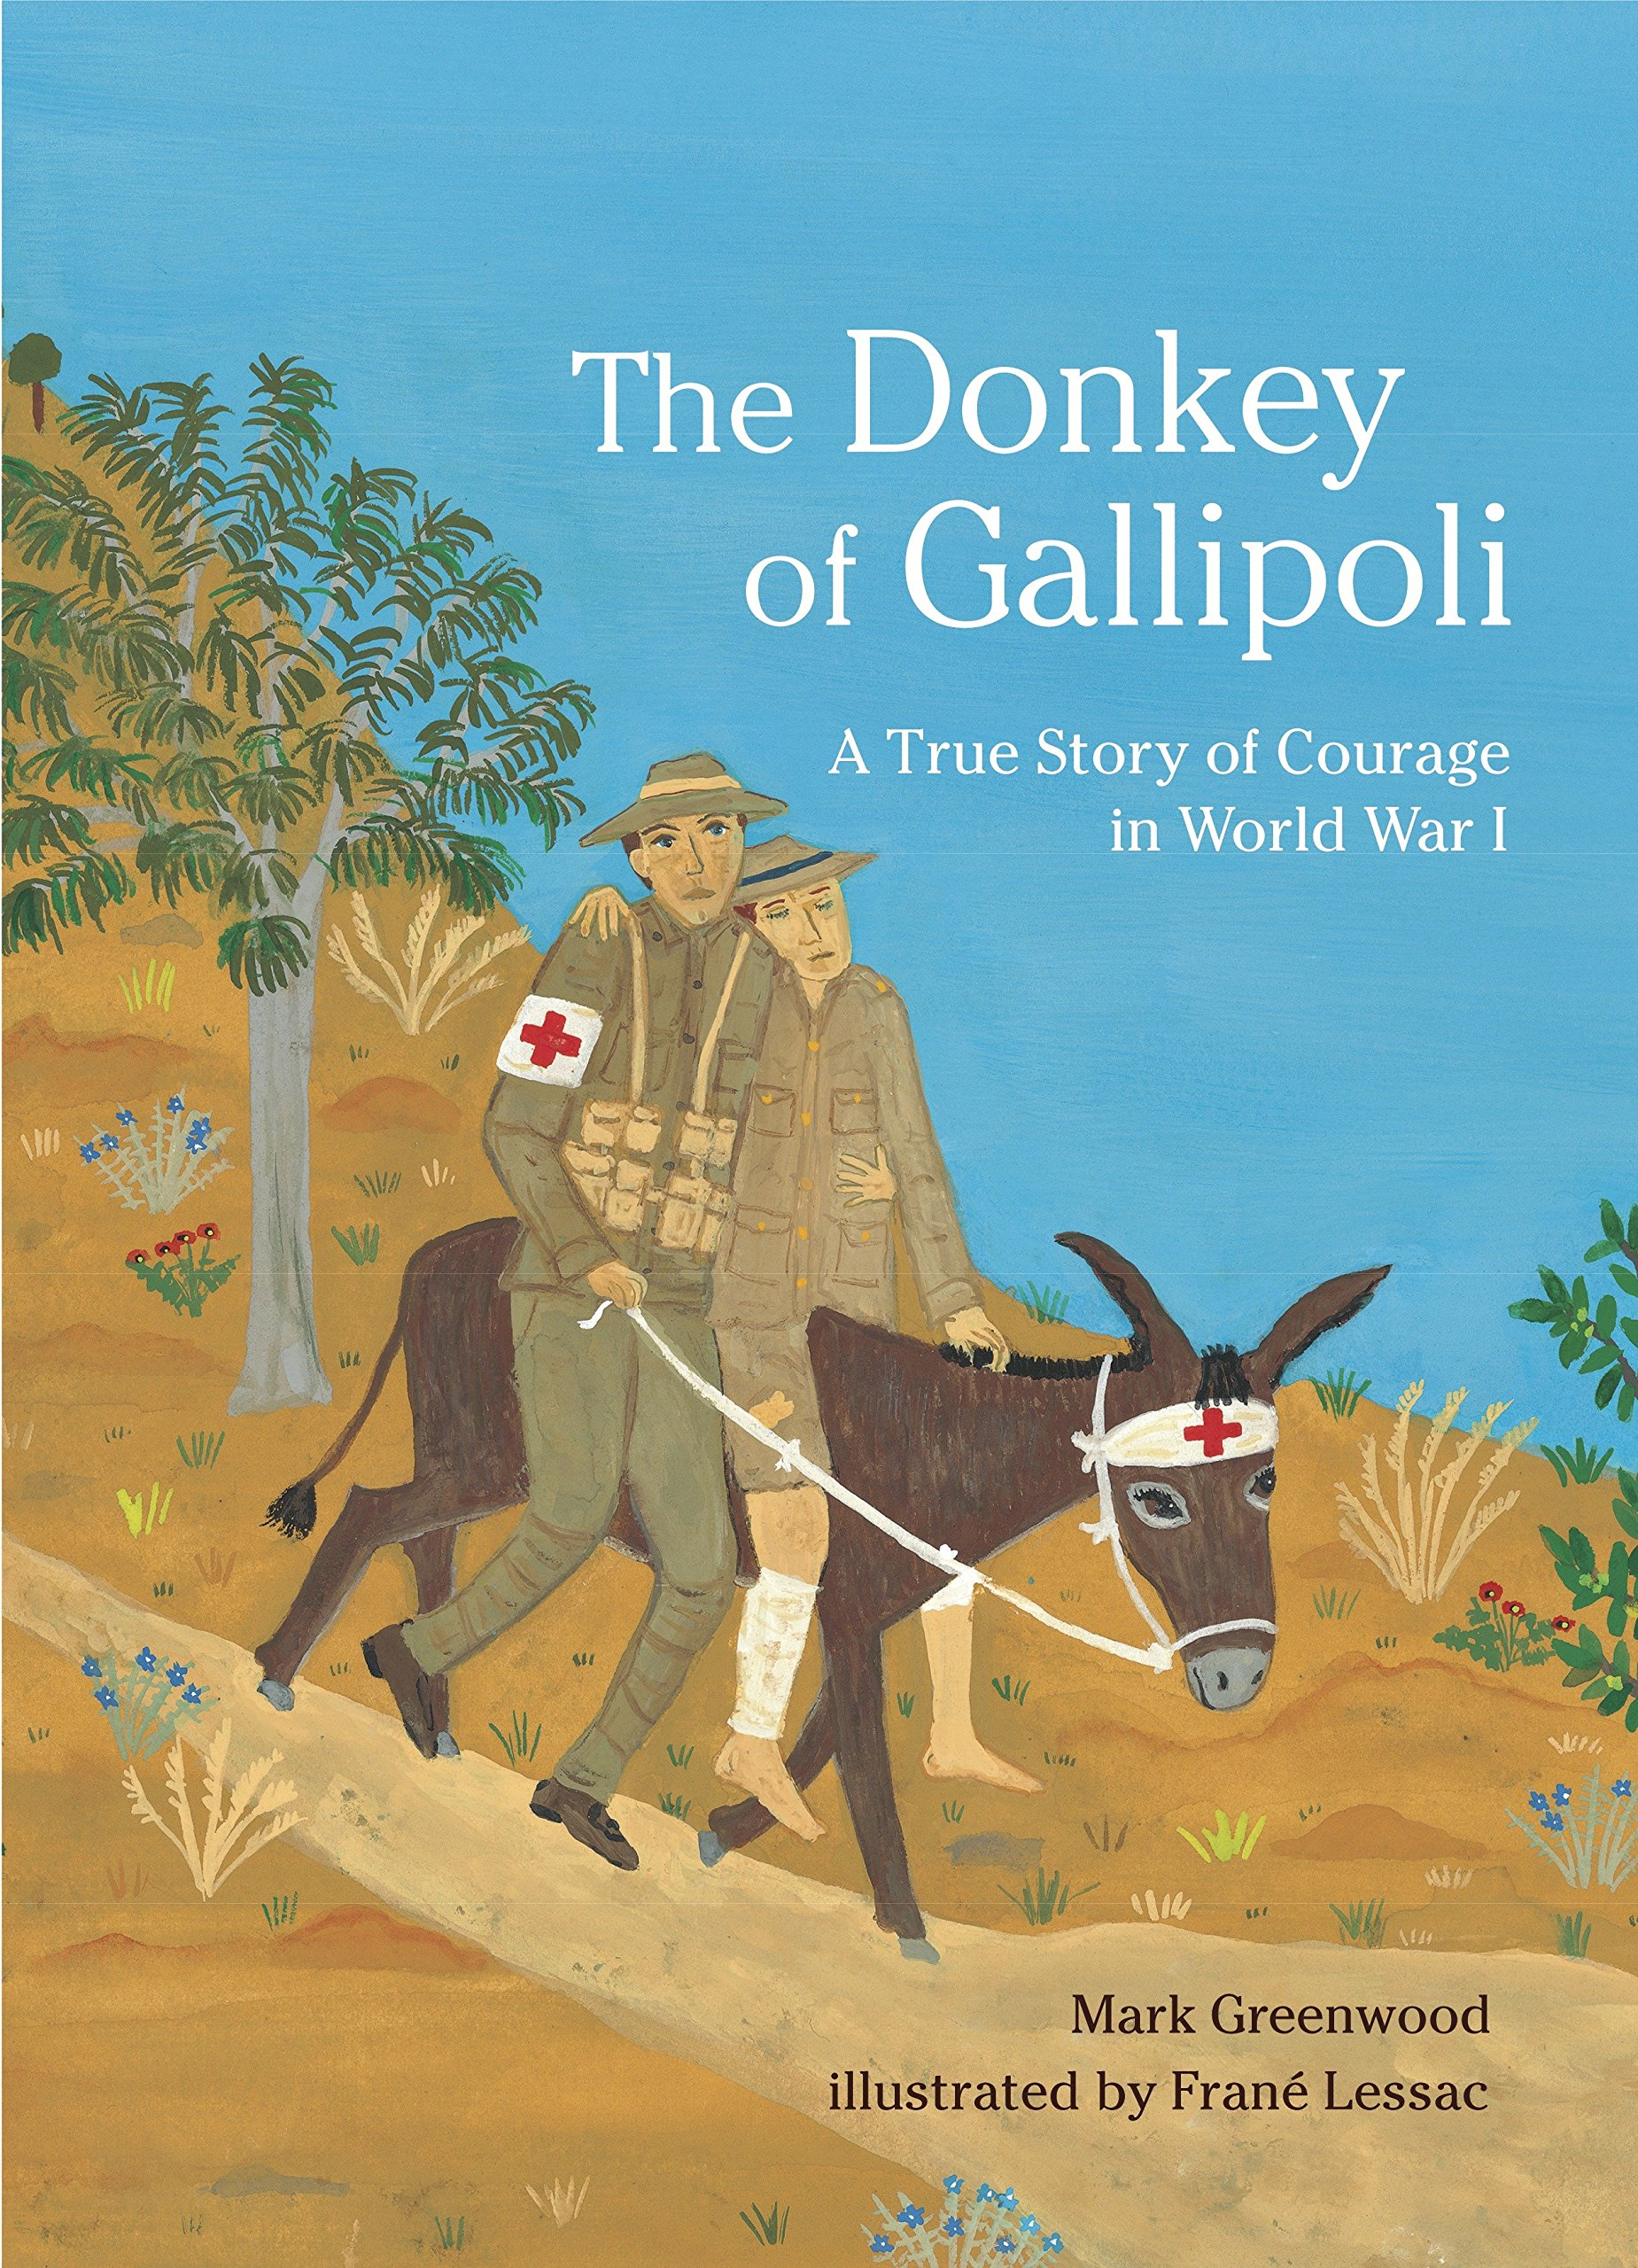 Read Online The Donkey of Gallipoli: A True Story of Courage in World War I PDF